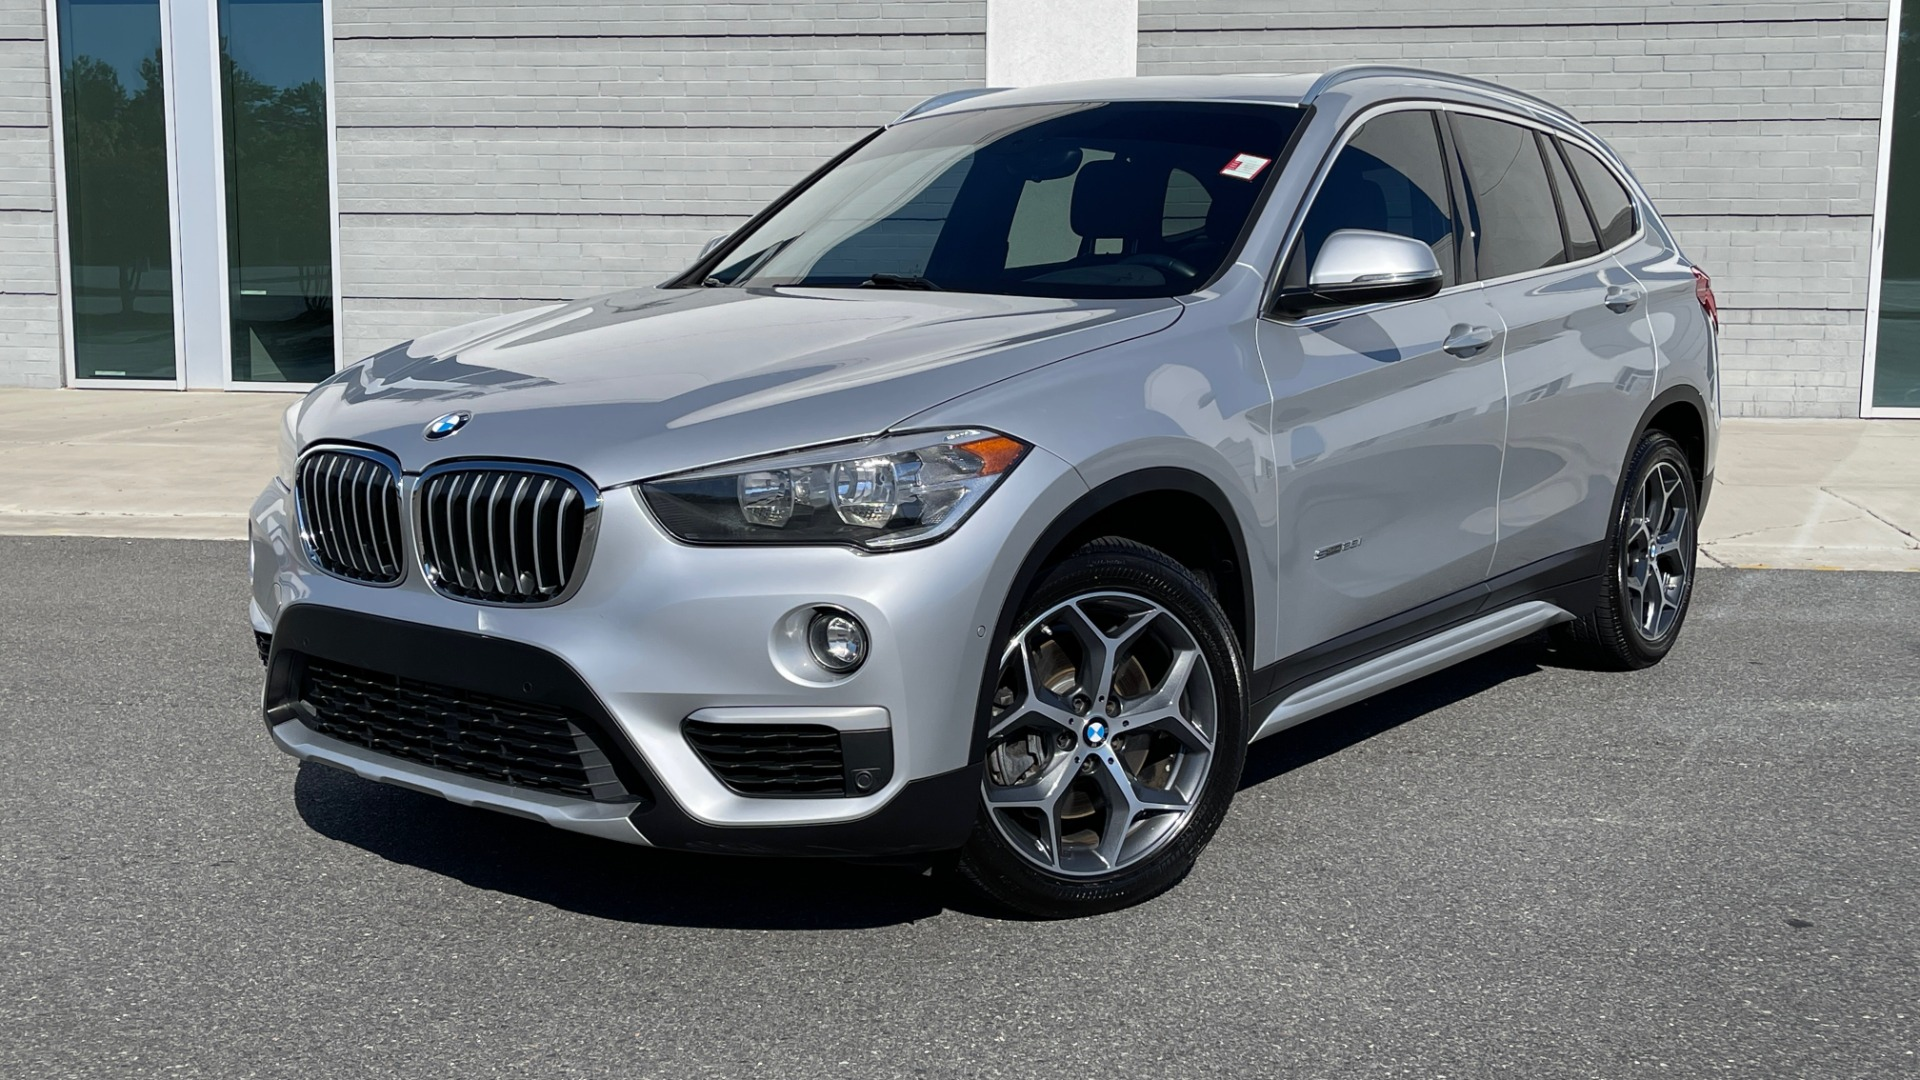 Used 2017 BMW X1 SDRIVE28I 2.0L / 8-SPD AUTO / DRIVER ASST / PANO-ROOF / REARVIEW for sale $26,995 at Formula Imports in Charlotte NC 28227 1